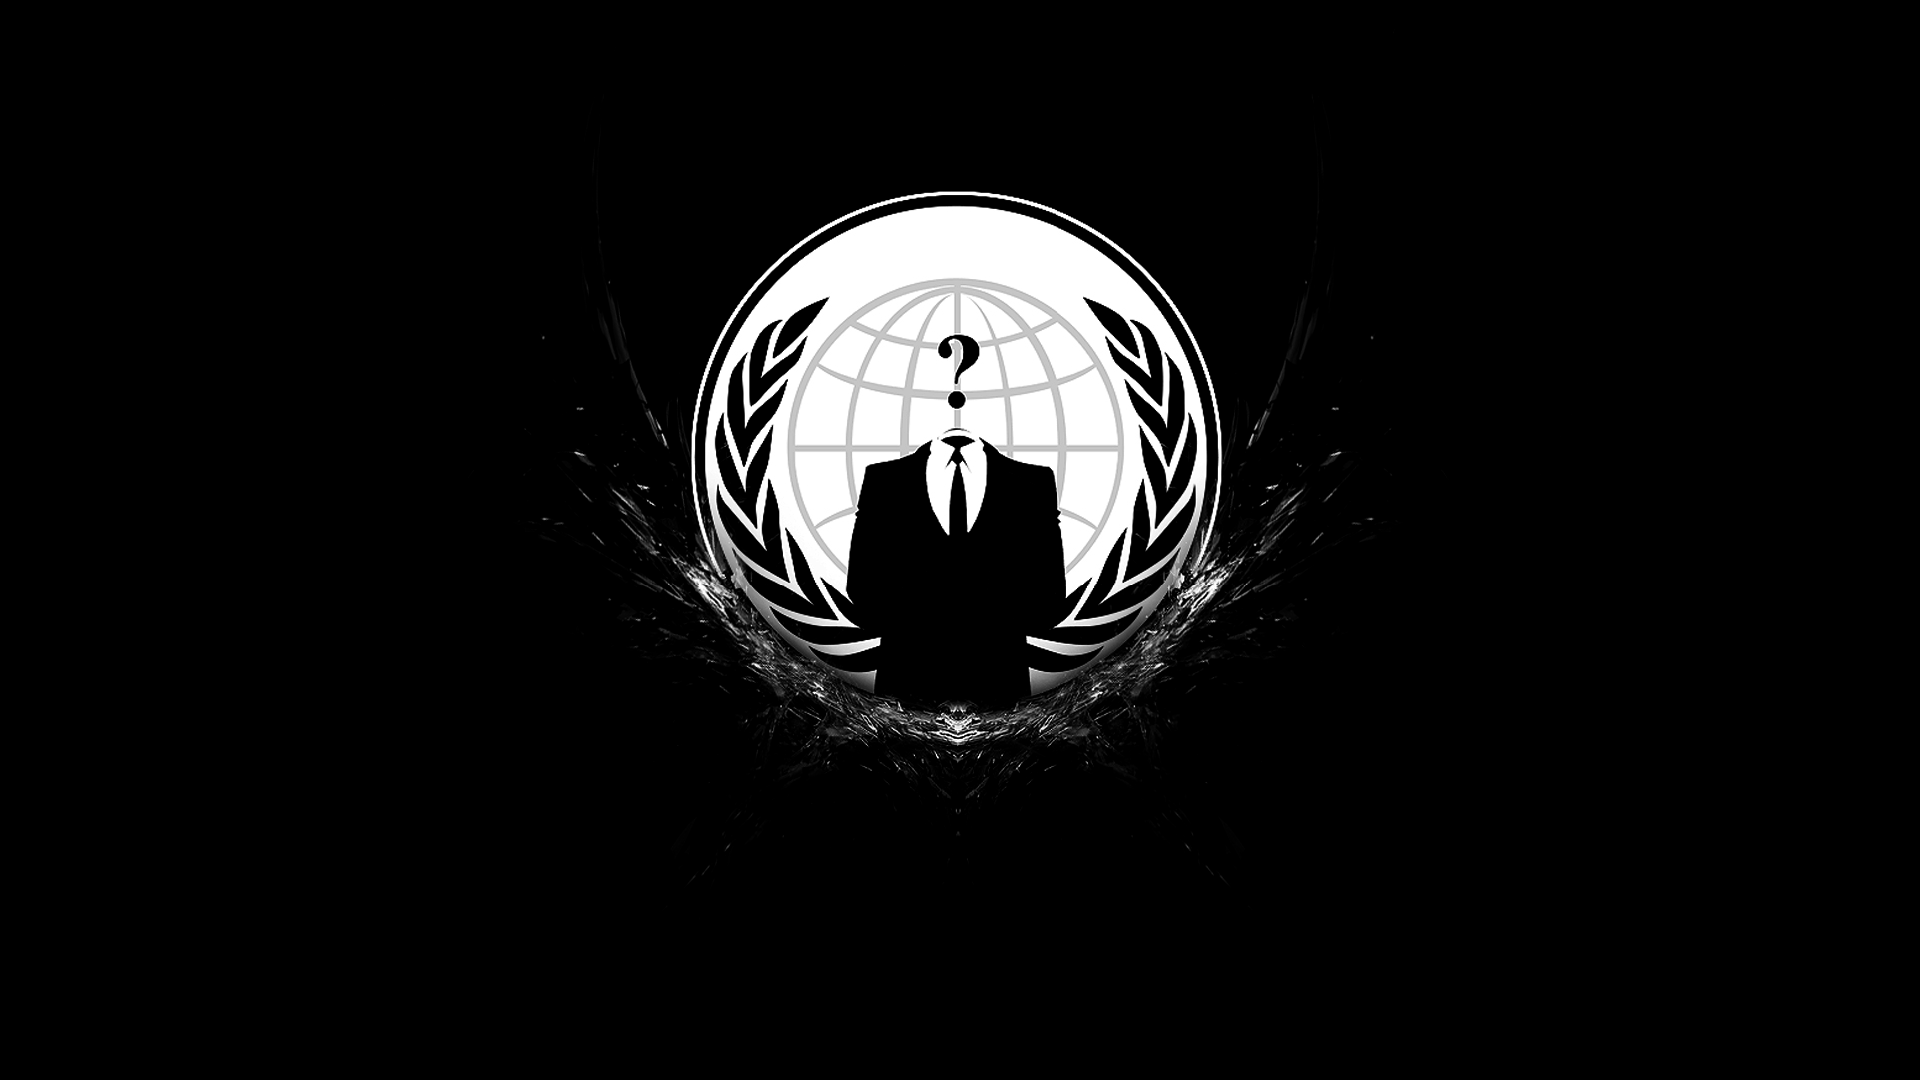 Anonymous Logos Wallpaper 1920x1080 Anonymous Logos 1920x1080